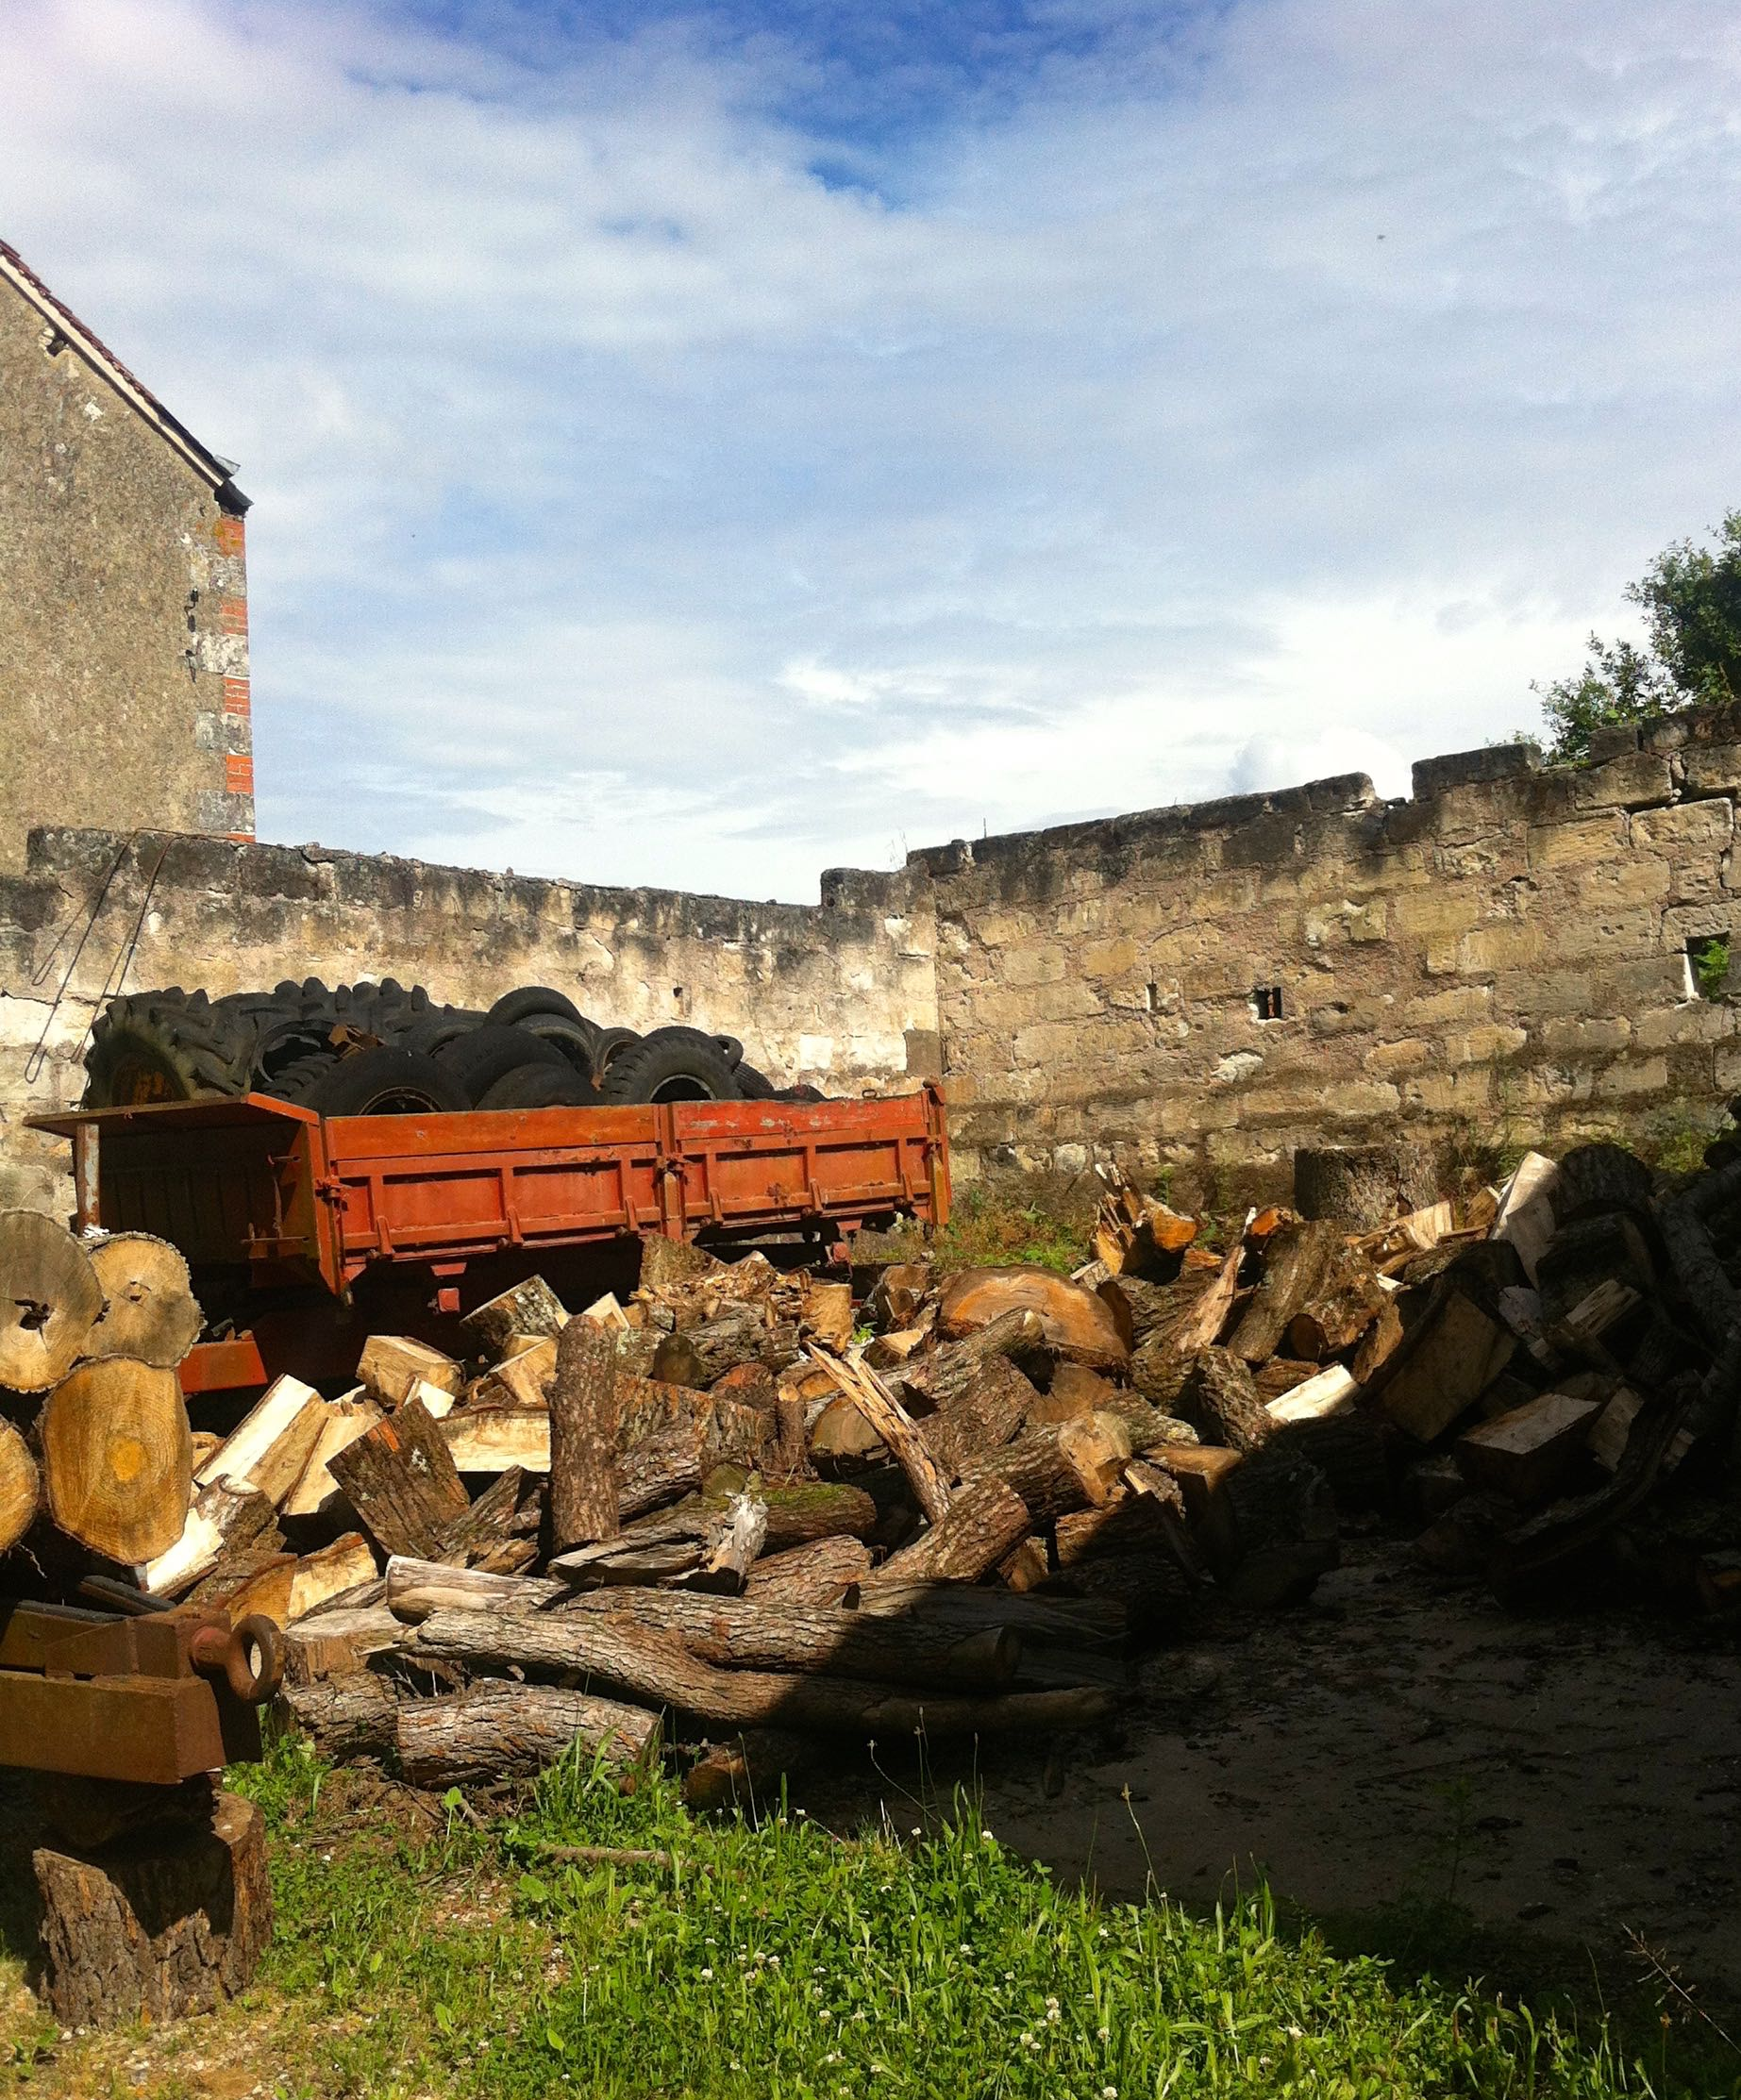 A pile of logs and tyres looking much better than they really should